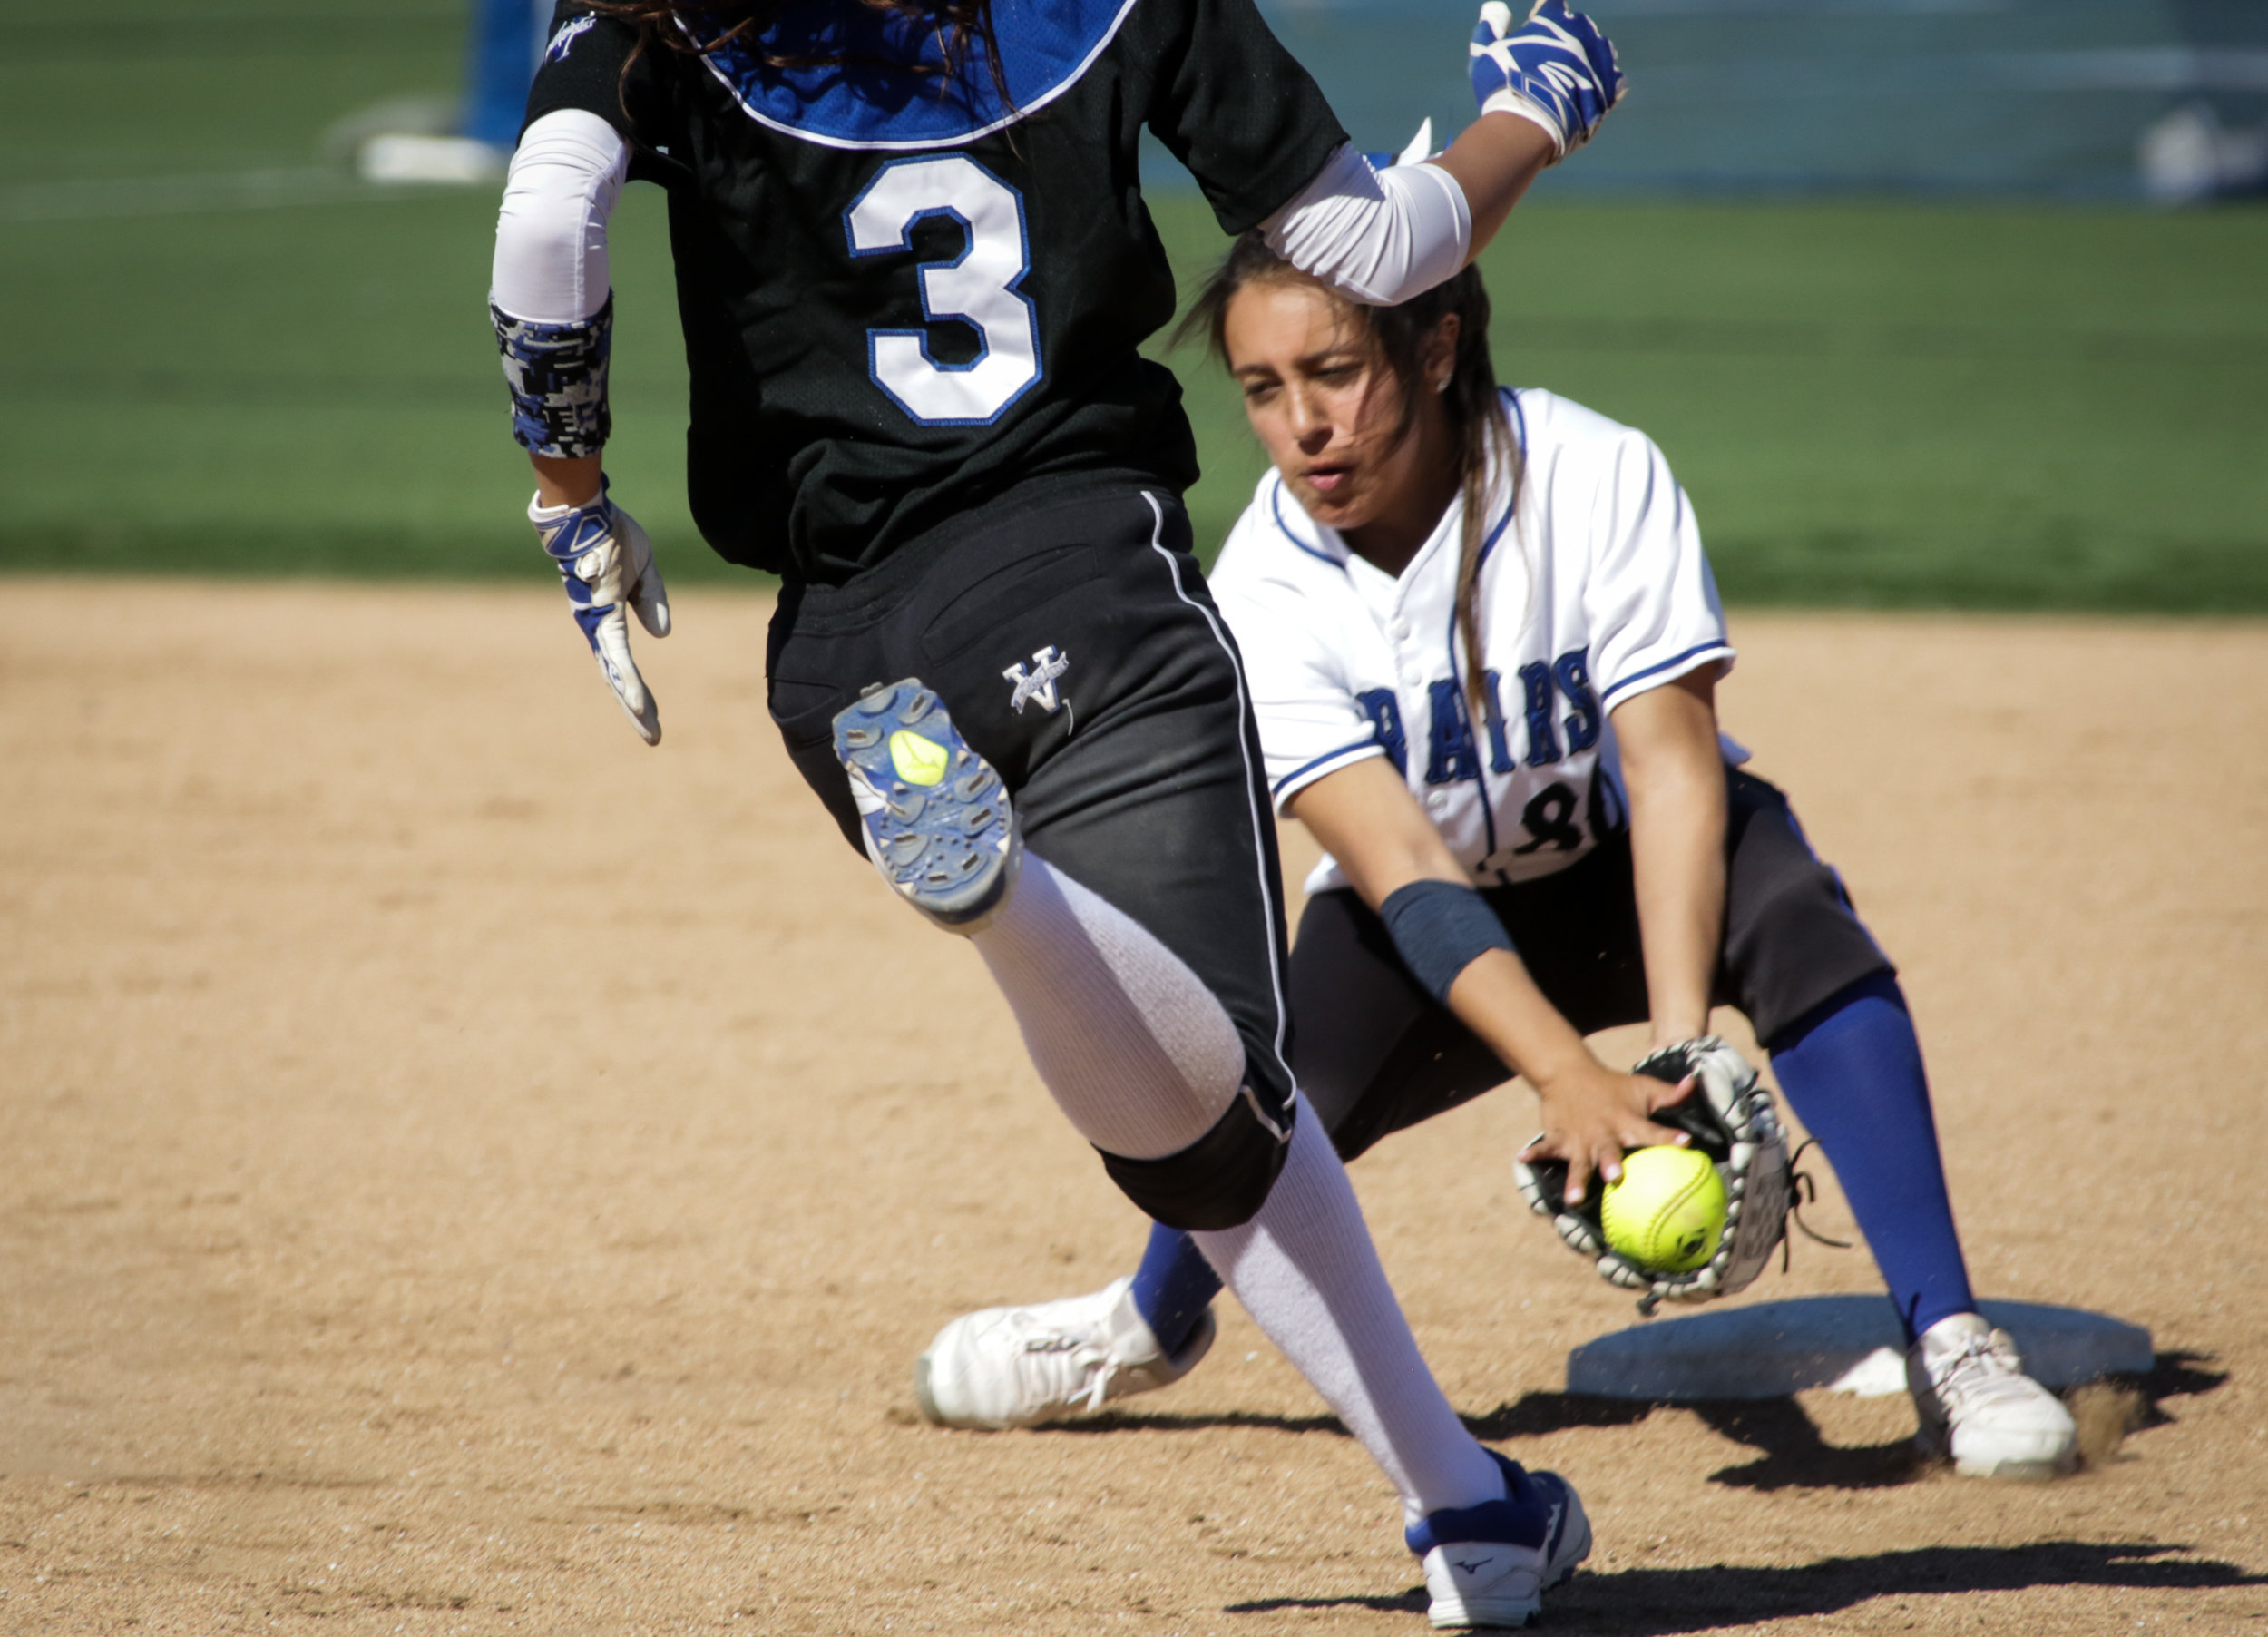 Santa Monica College Corsair softball team player Emma Soto (Right) in the process of successfully forcing out her opponent during their game against Allan Hancock College on Tuesday, March 27th, 2018. The game ended 8-1 in favor for Allan Hancock College. (Santa Monica, California, Tuesday March  27, 2018.) (Corsair/Ashutosh  Bikram Singh)